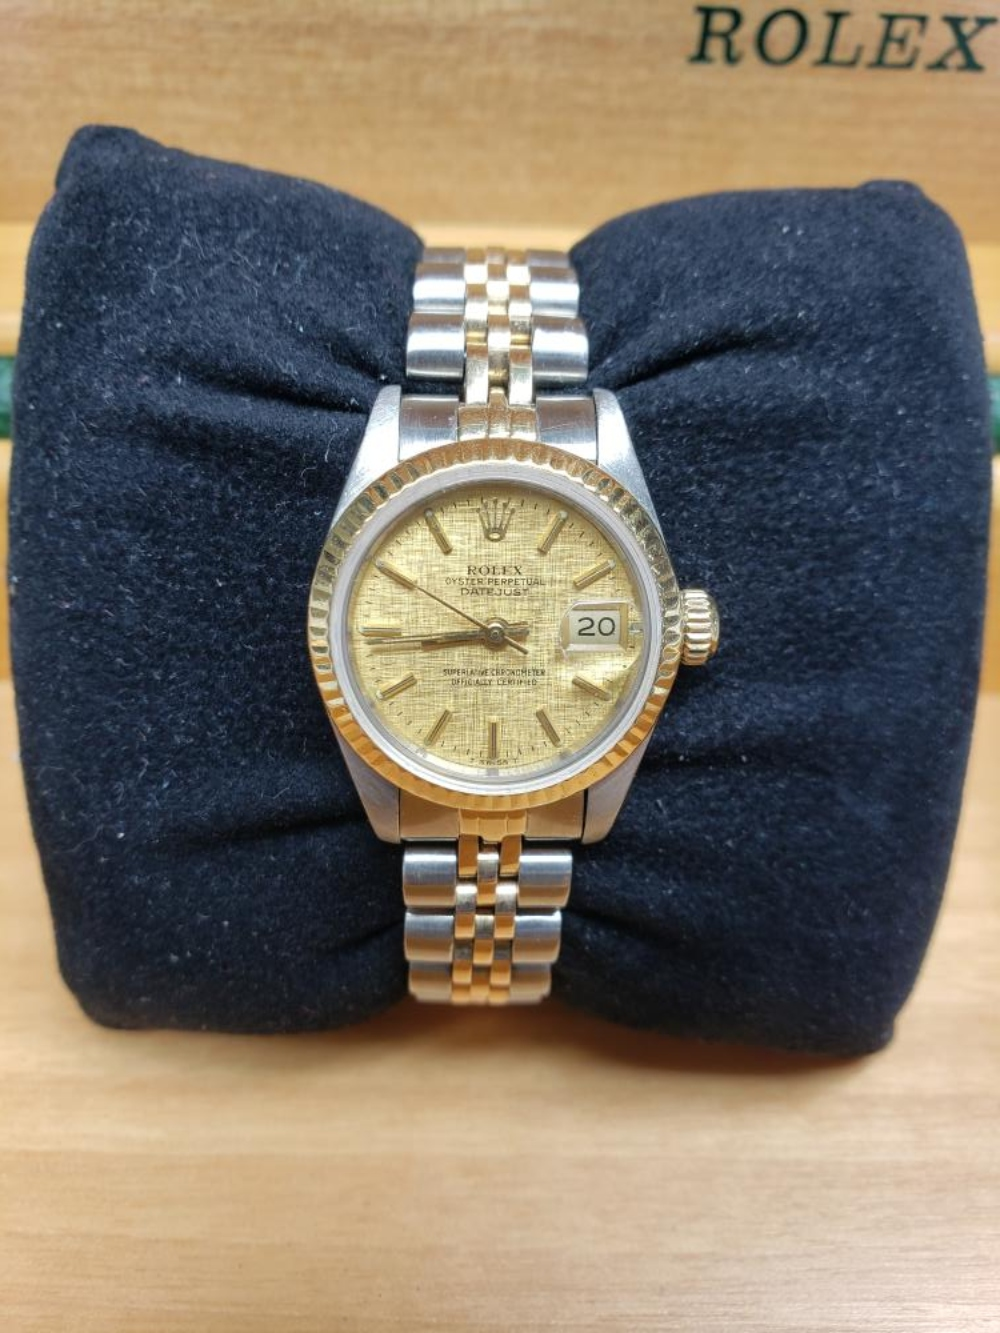 Lot 65: Ladies Rolex Datejust Rare Linen Dial Two-Tone Gold & St. Jubilee Band Watch